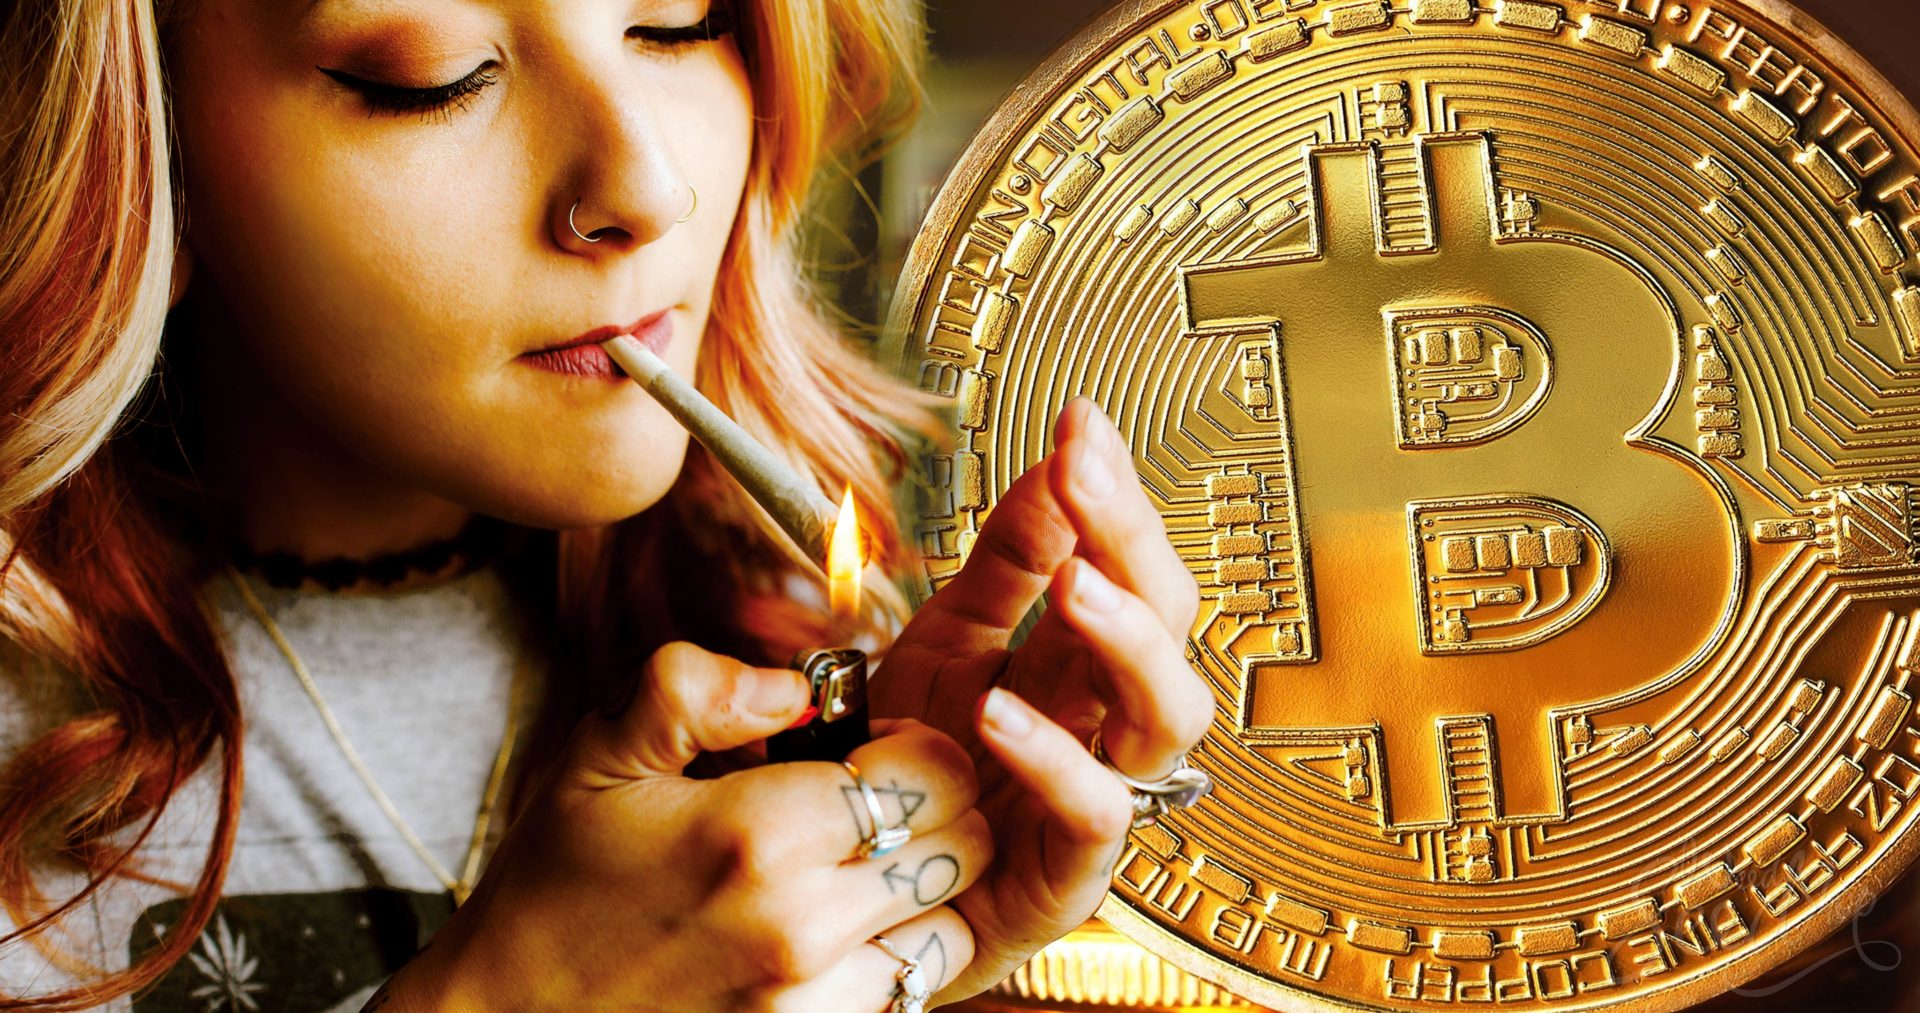 Cannabis and Cryptocurrency: Can Bitcoin be exchanged for Buds?